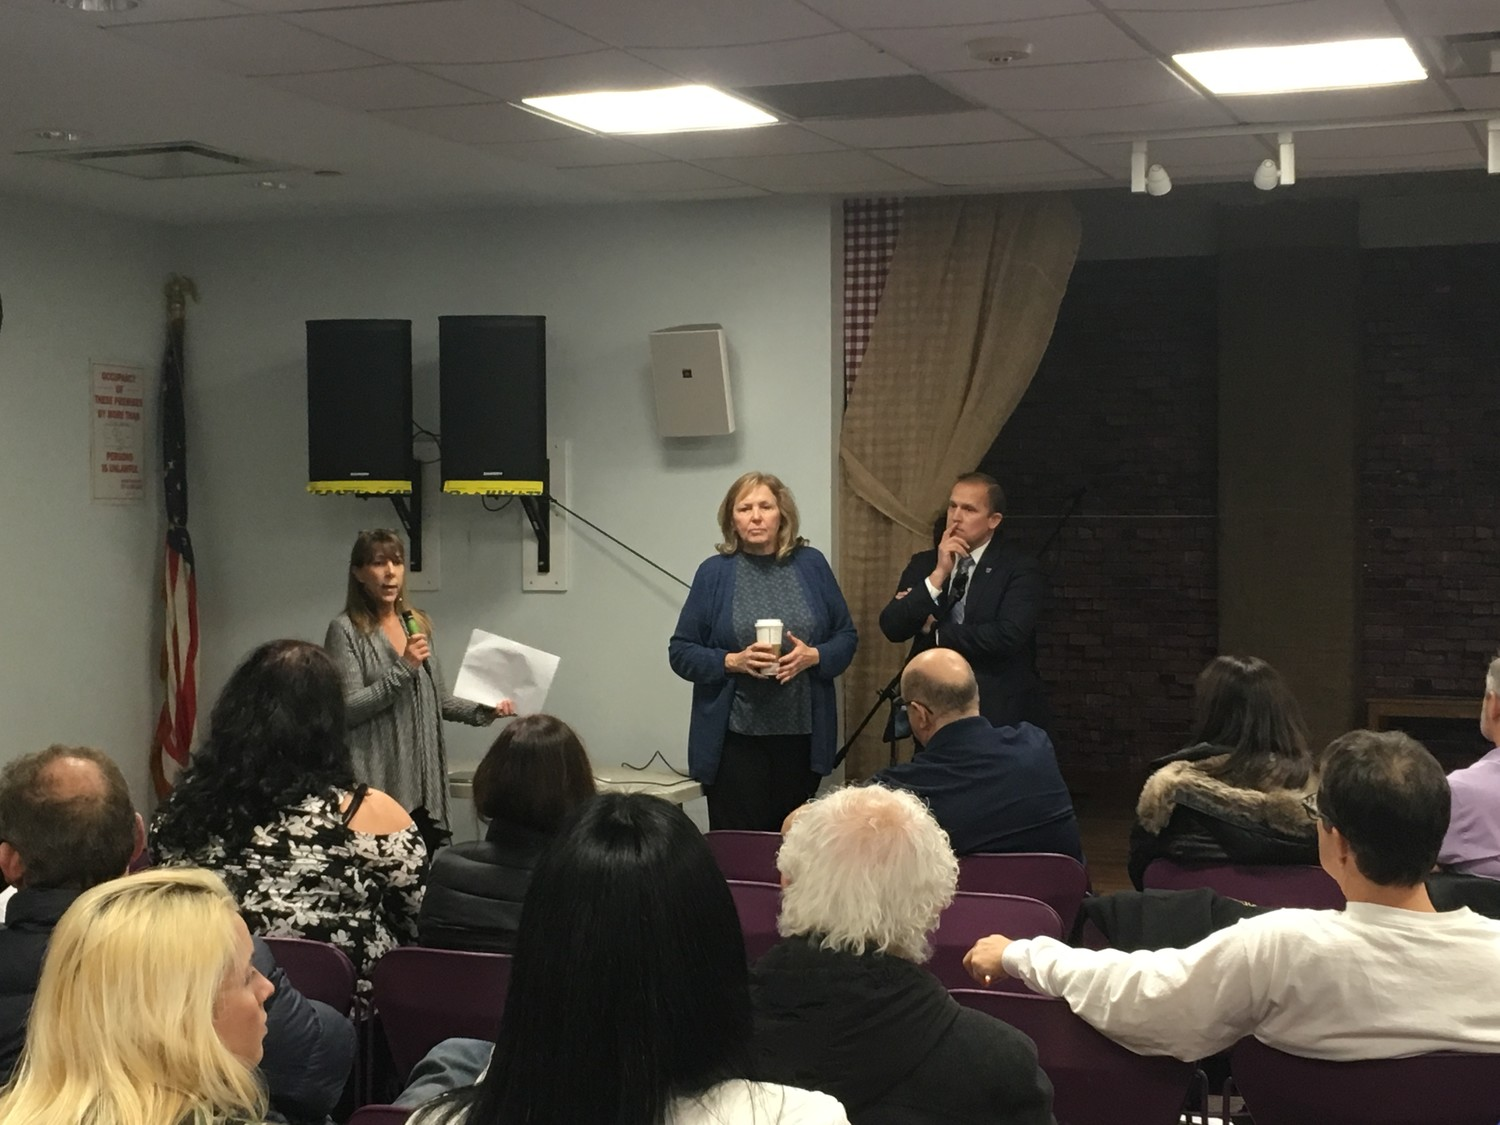 State Assemblywoman Melissa Miller, far left, County Legislator Denise Ford and county Office of Consumer Affairs representative Kenneth Heino offered guidance to residents at a forum on Jan. 11.